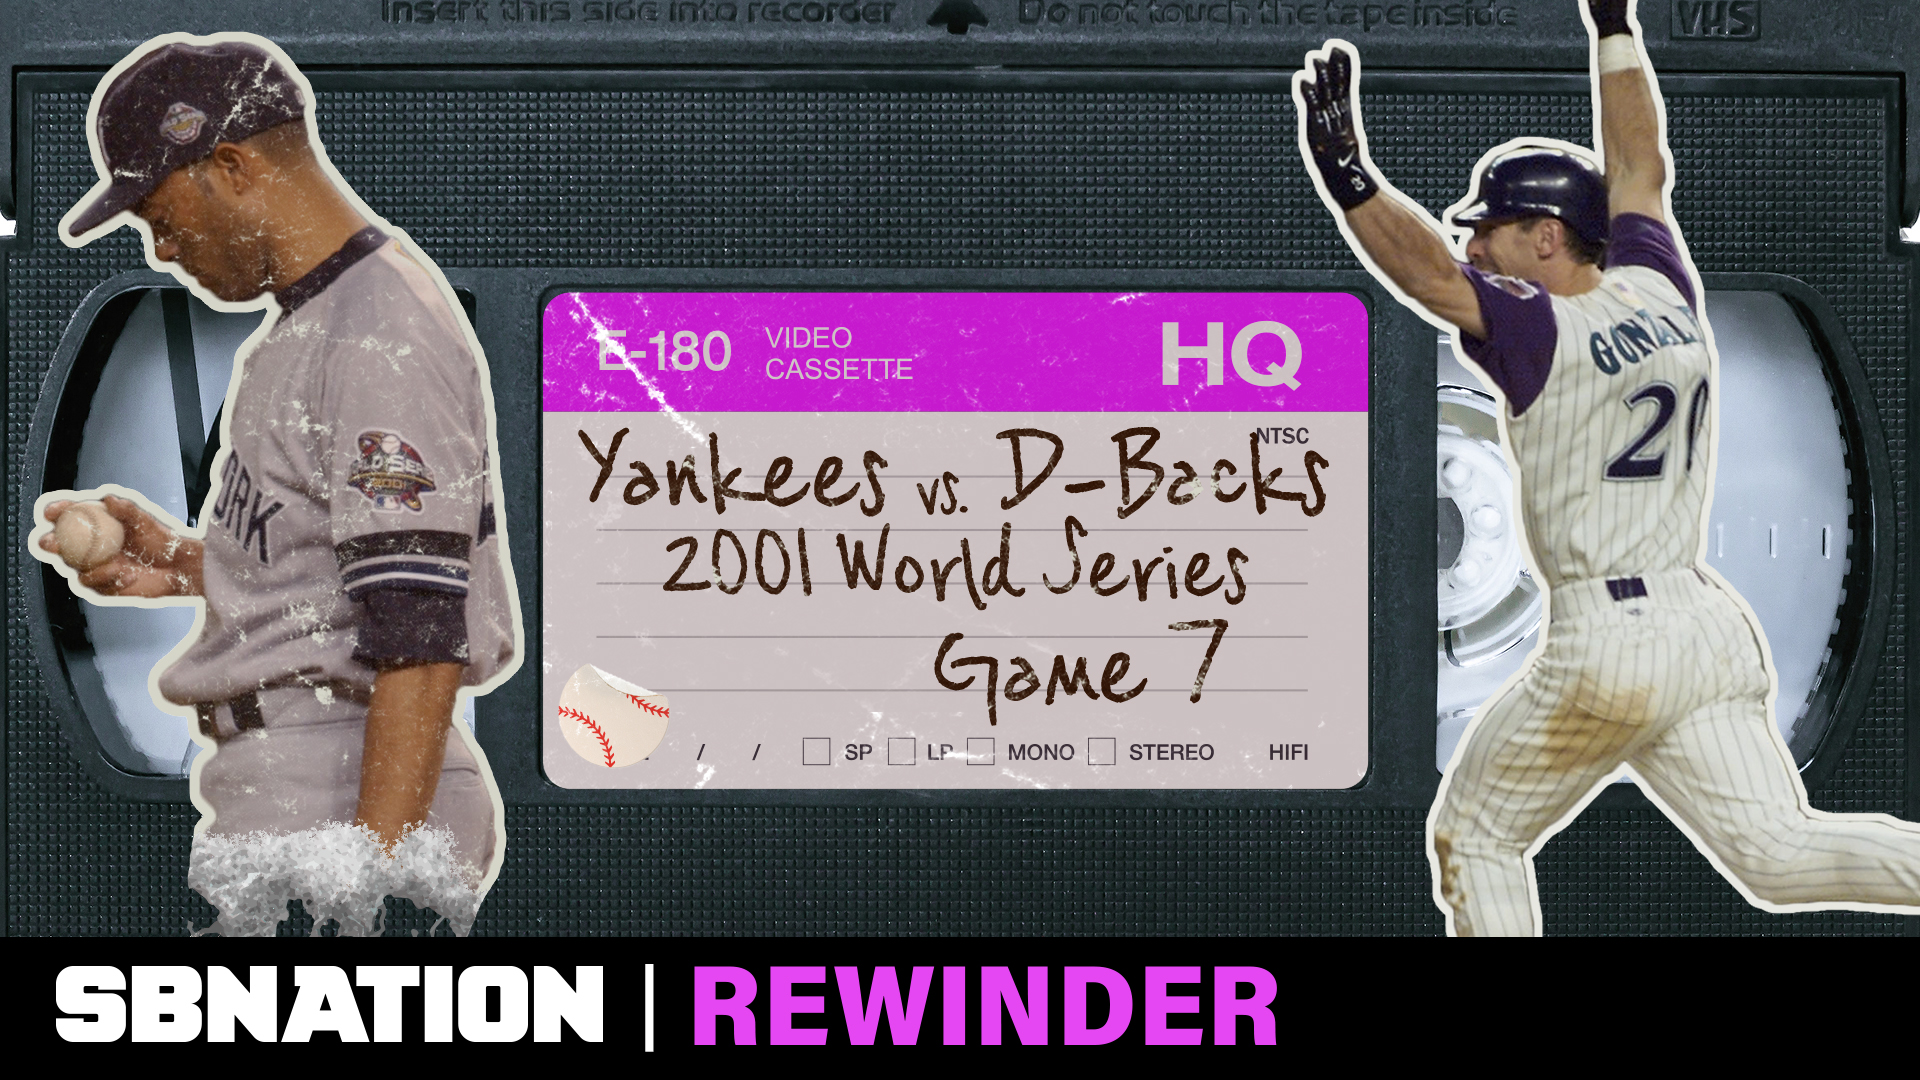 c8c587dc0 The Game 7 walk-off finish to the 2001 World Series gets a deep rewind -  SBNation.com